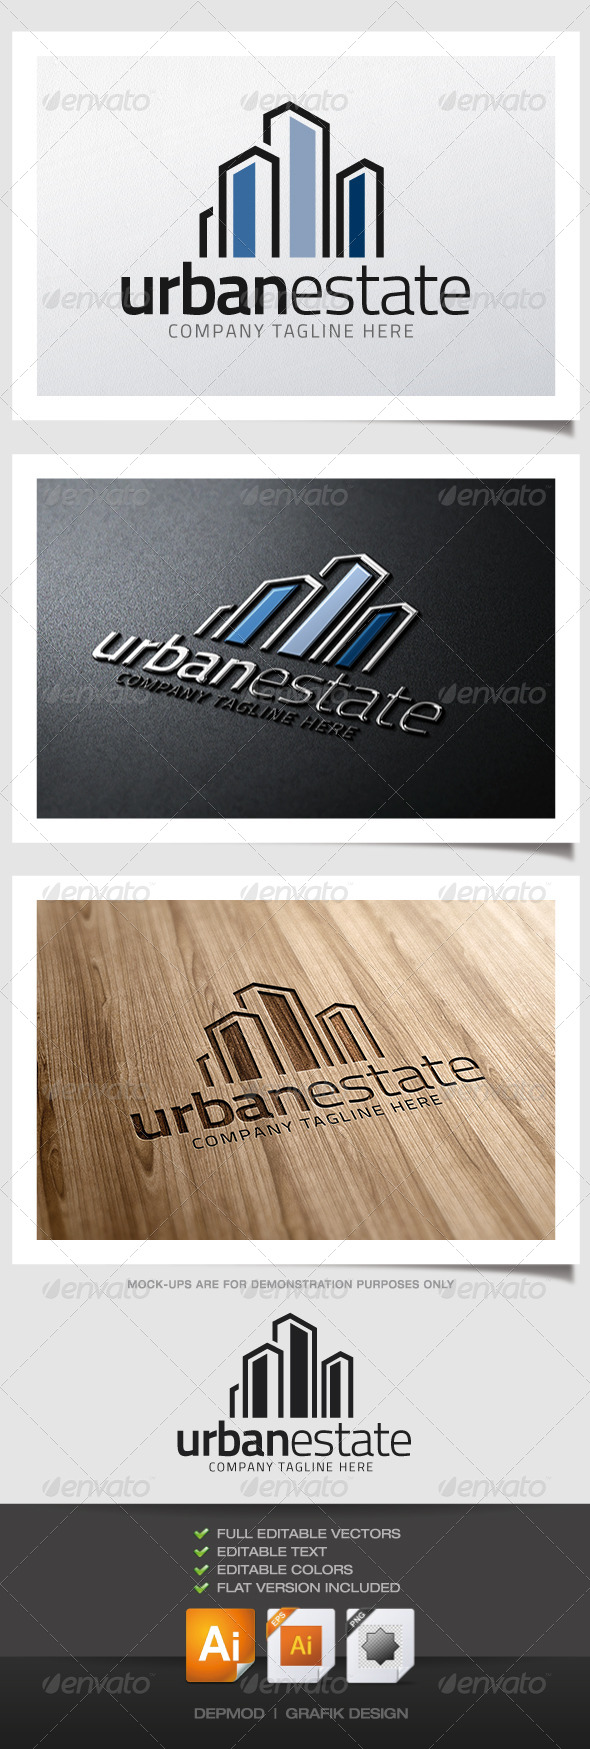 GraphicRiver Urban Estate Logo 5075258